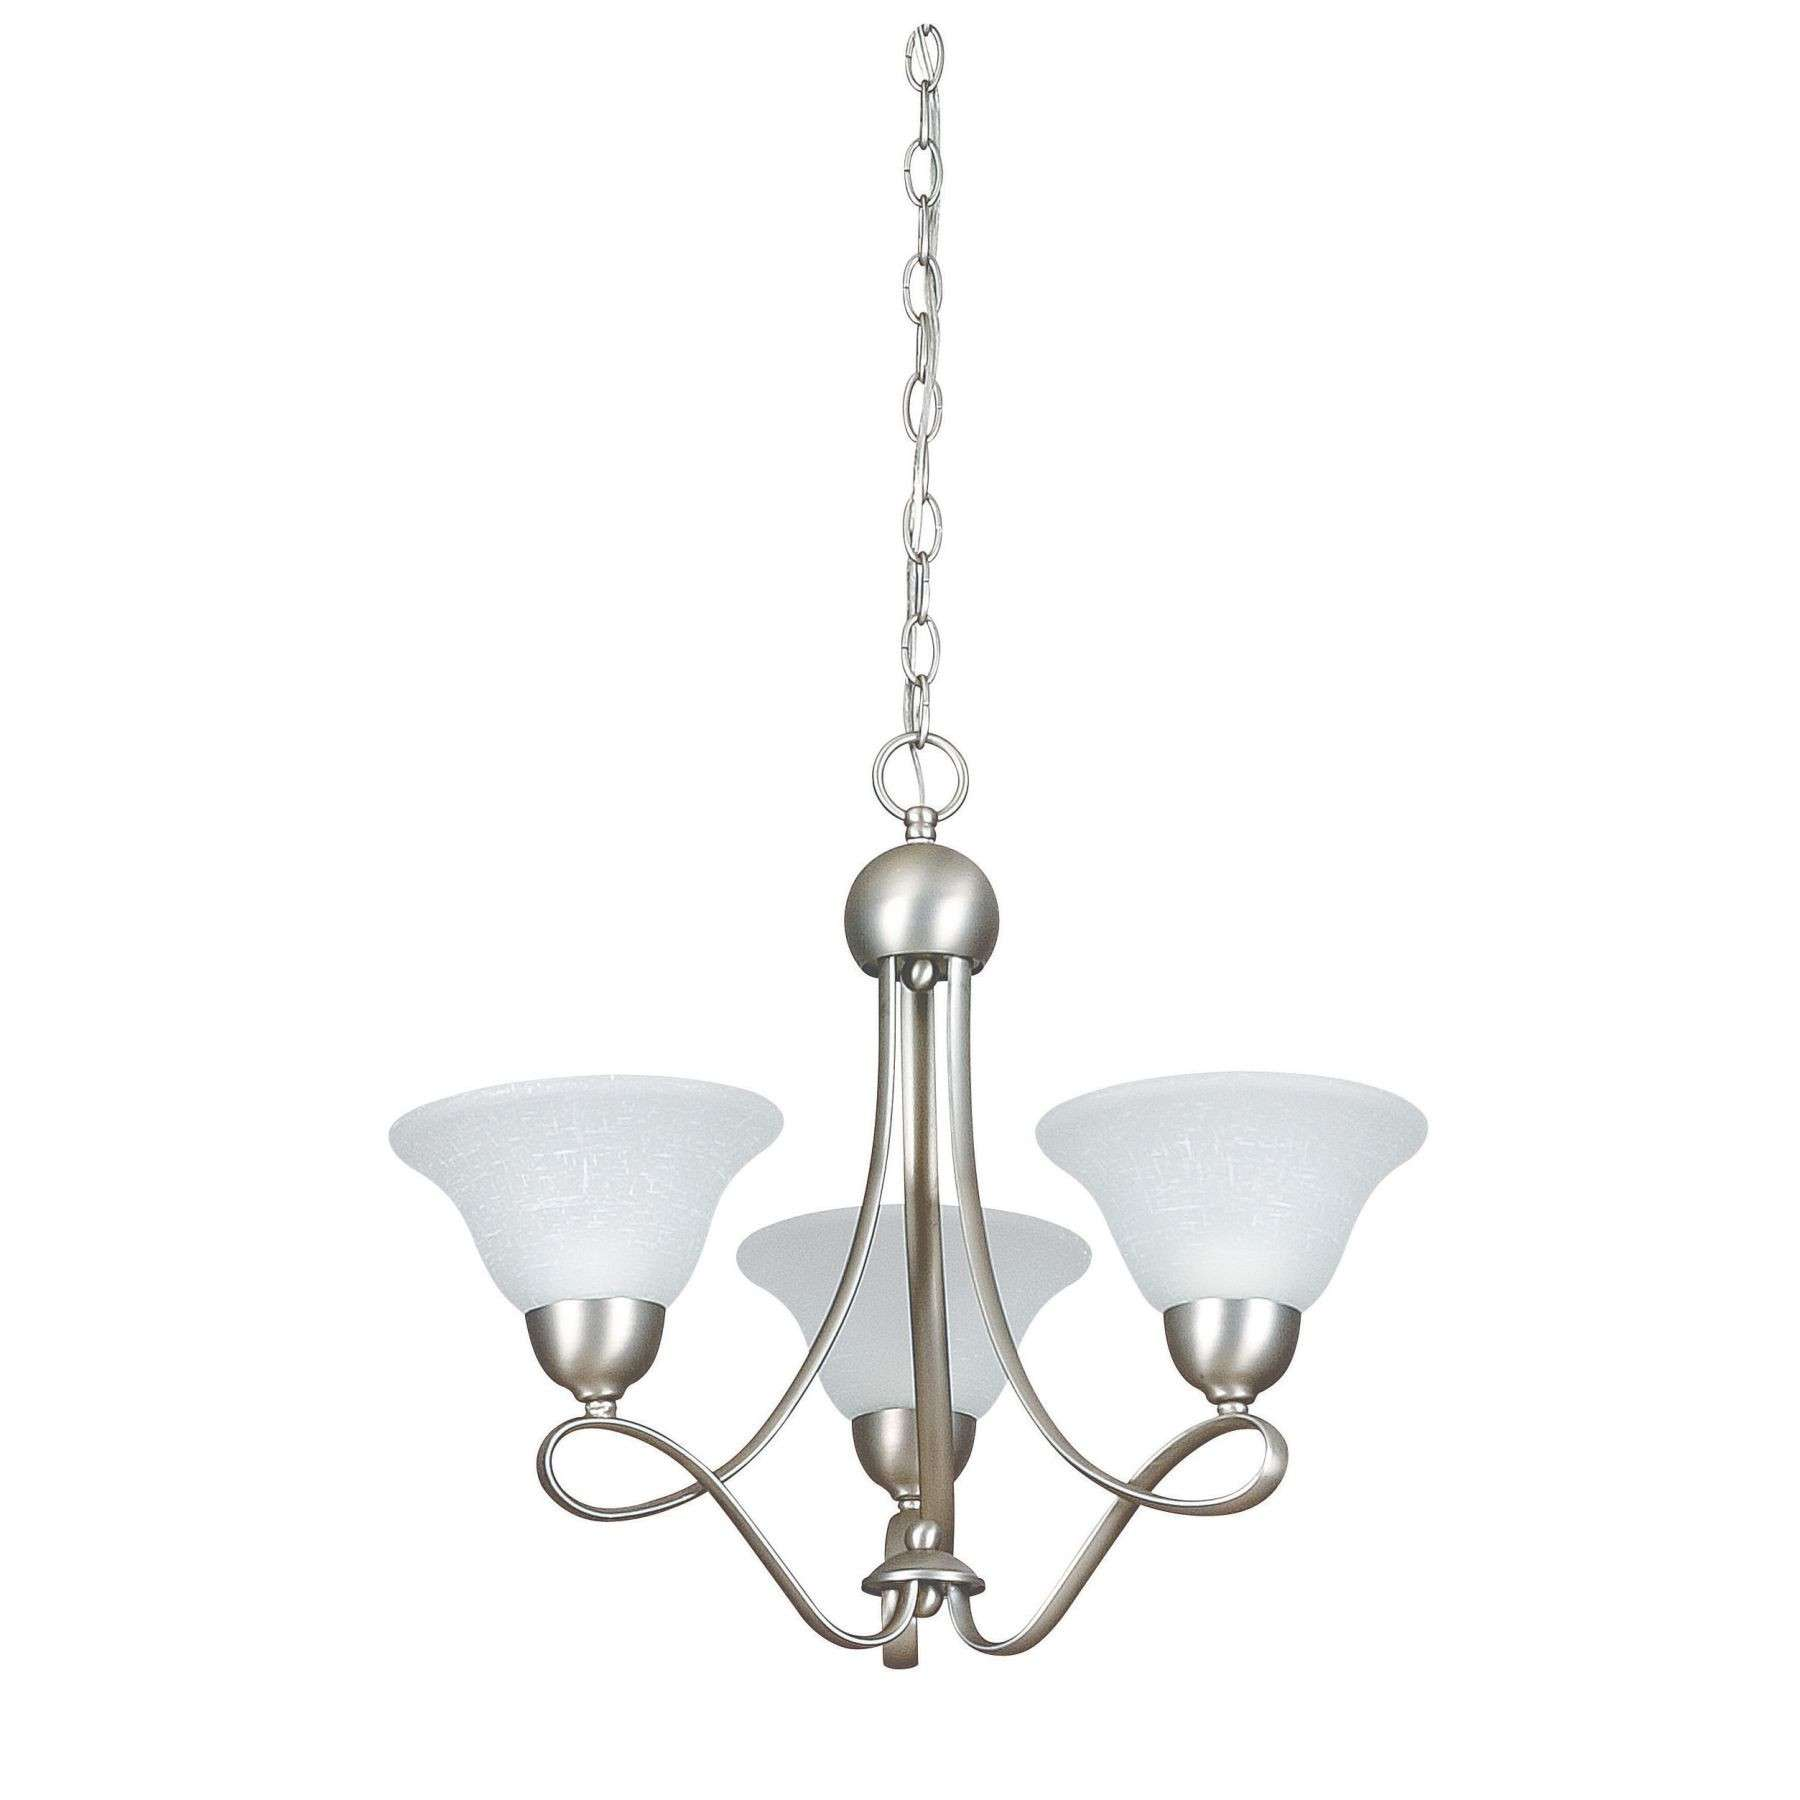 Sunset Lighting F2593-53 18-1/4 inch 3-light Palisades Chandelier in Satin Nickel Finish